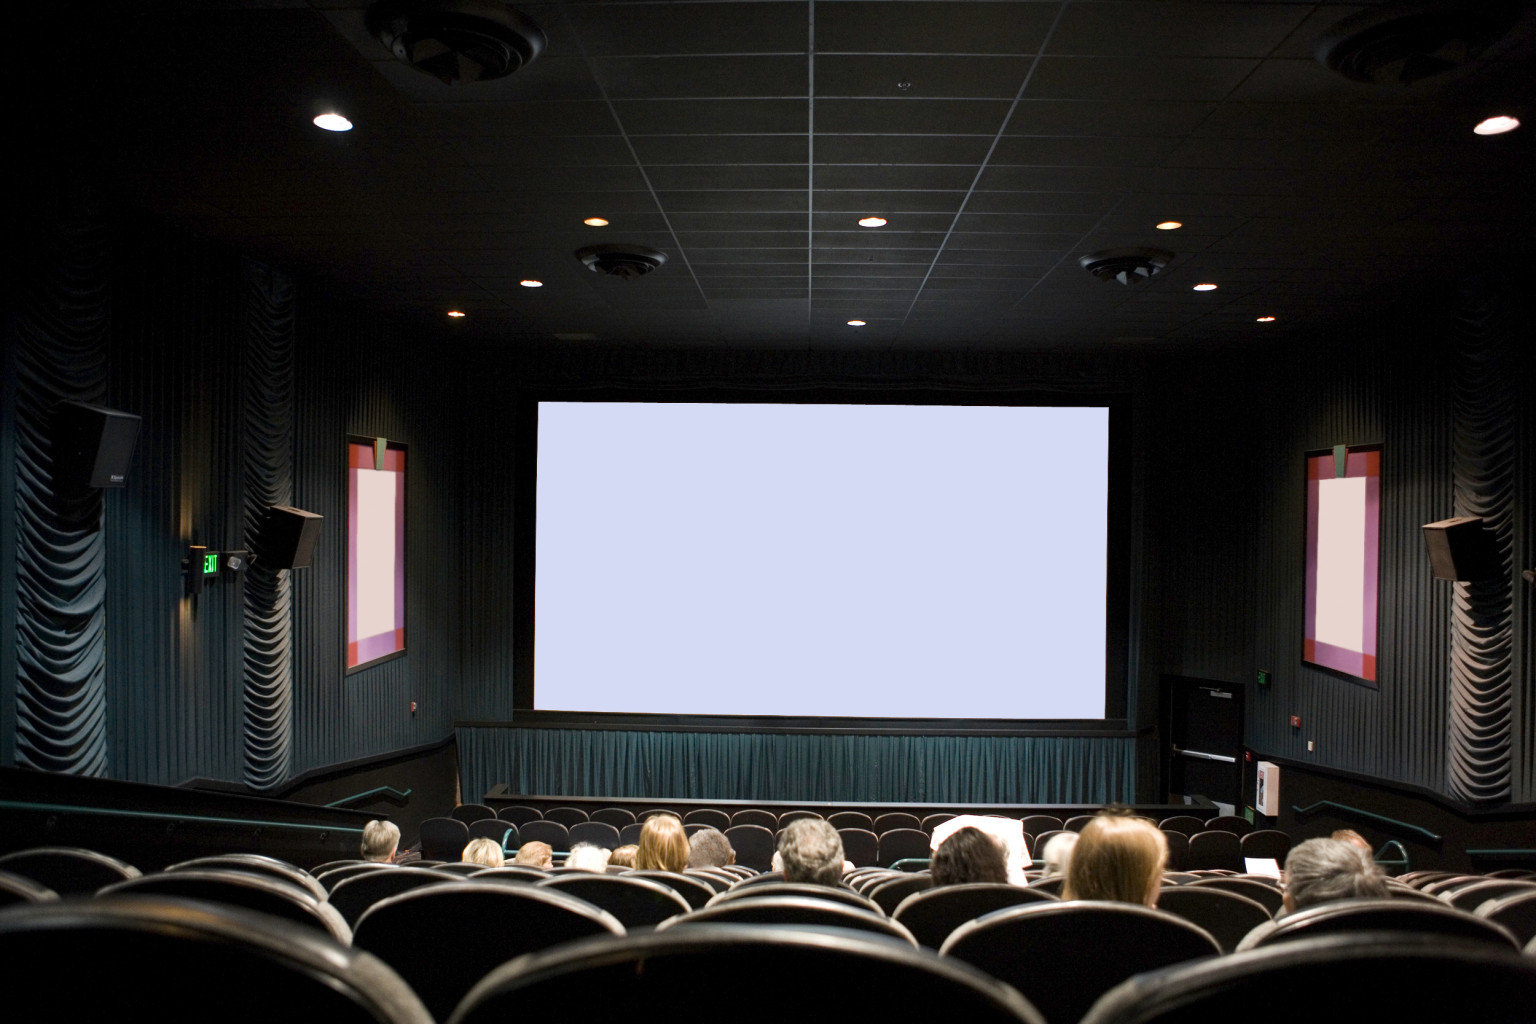 Movie Ater Full People O Crowded Movie Theater